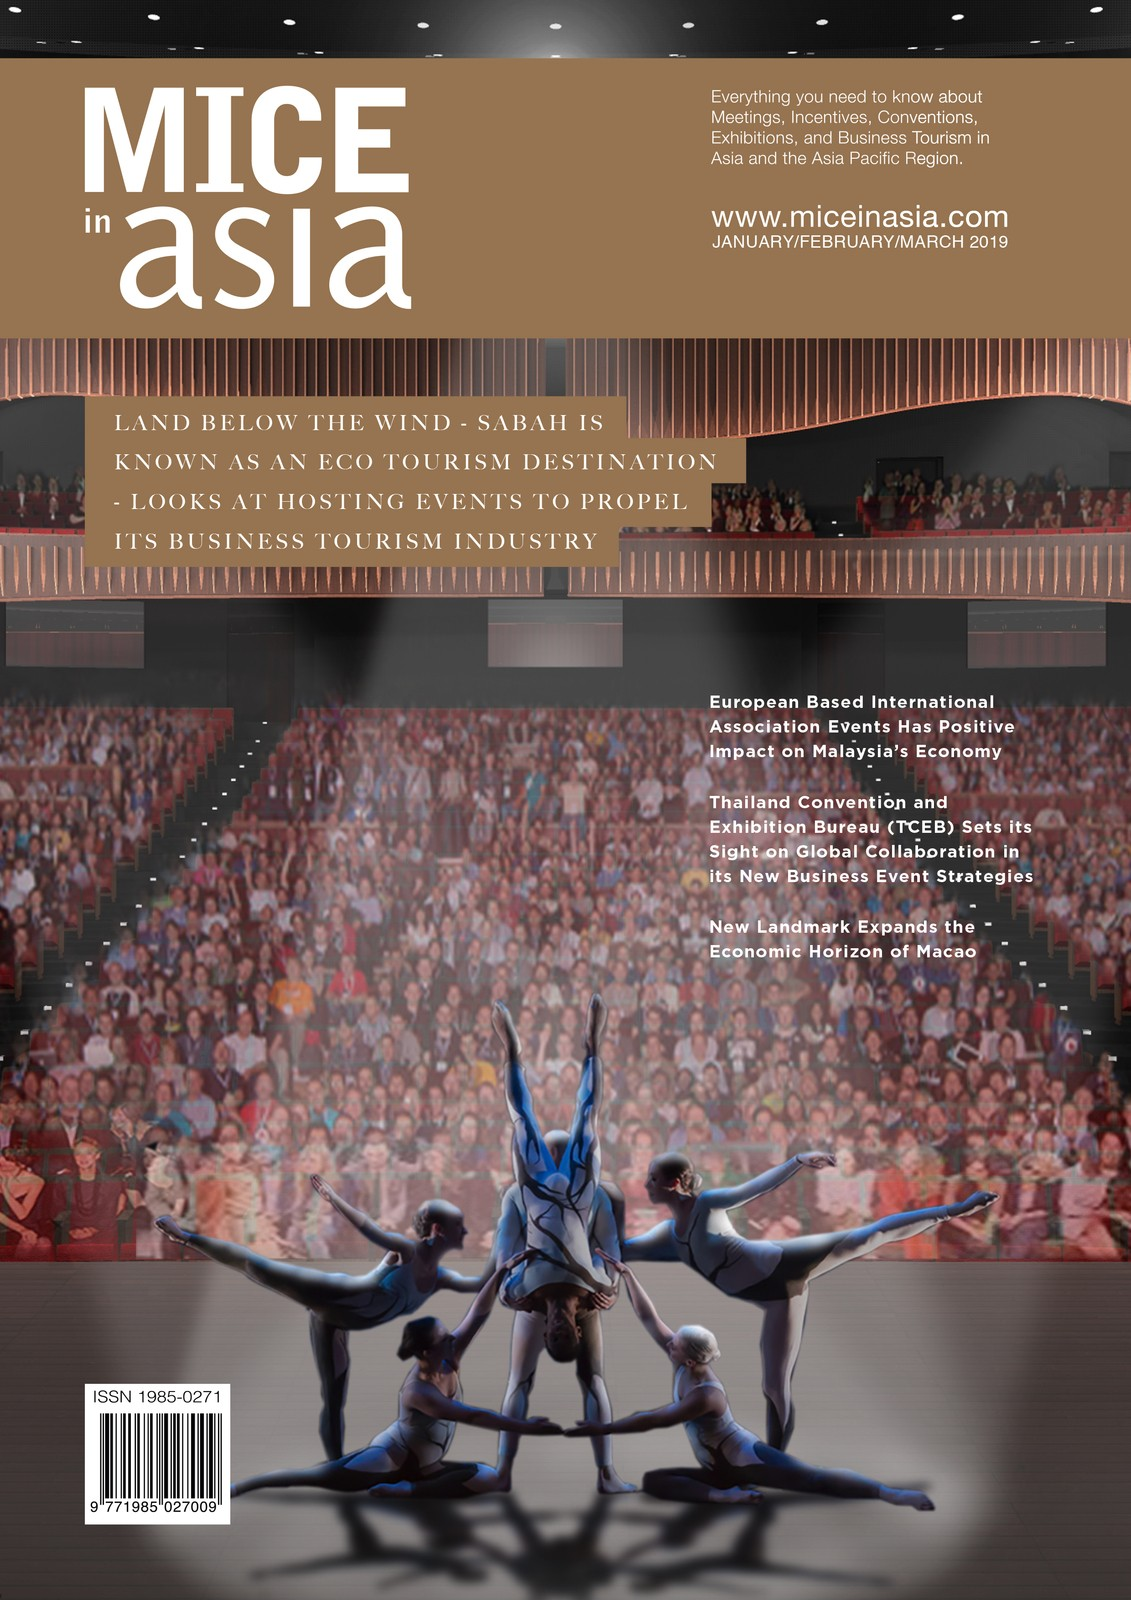 Mice In Asia Meeting Incentives Conventions Exhibitions